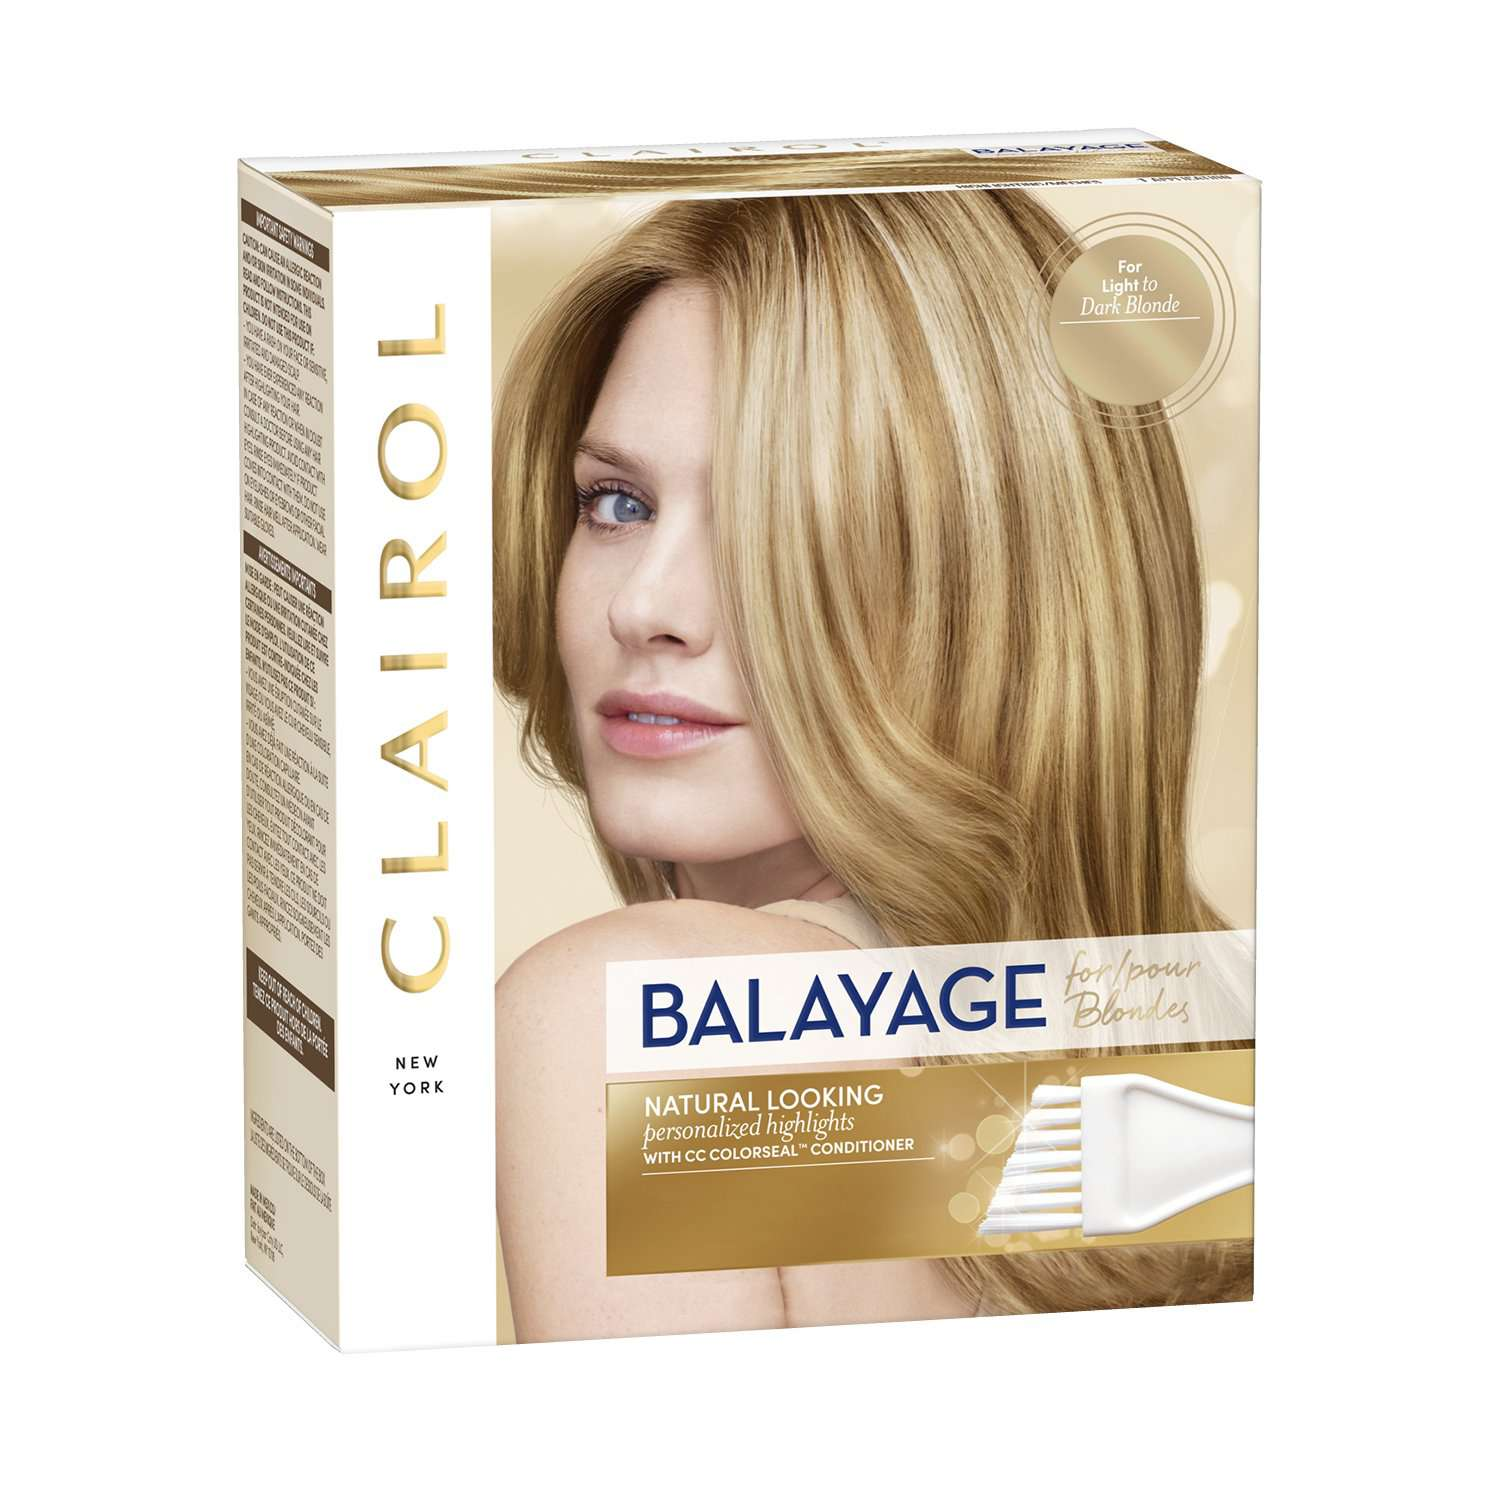 Clairol Balayage for Blondes